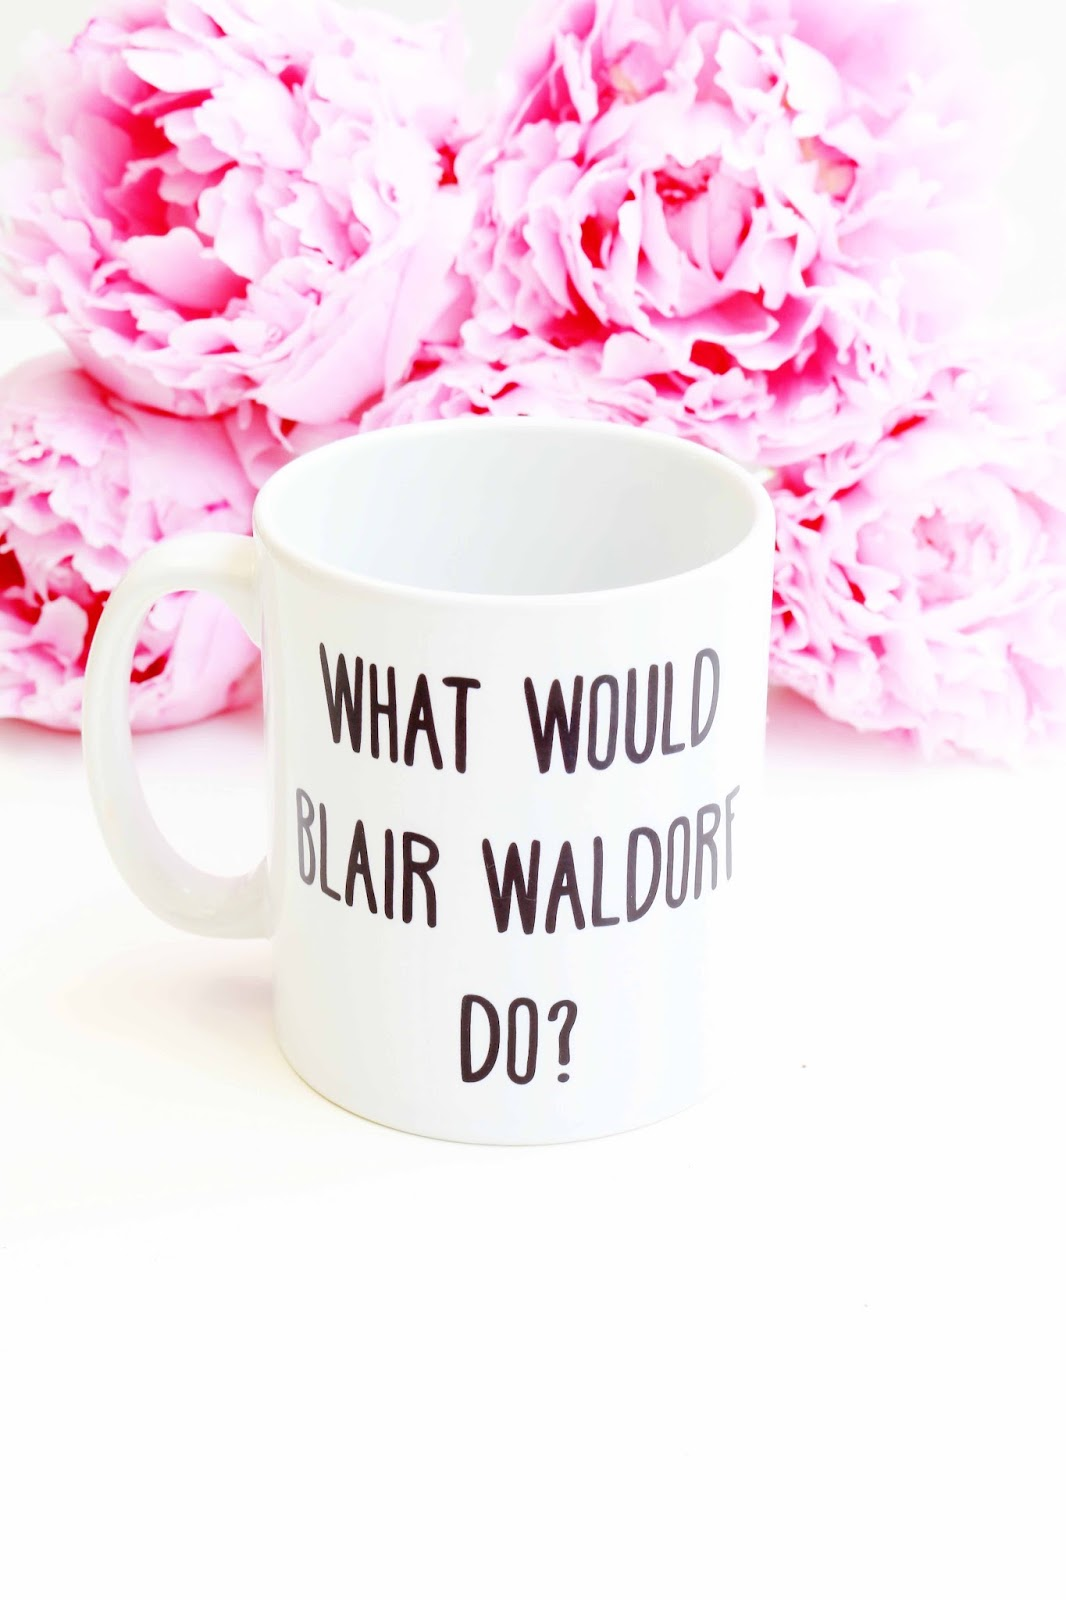 Lifestyle, Blogging, What To Do When You're in a blogging slump, what to do when you run out of blog ideas, Blair Waldorf Mug